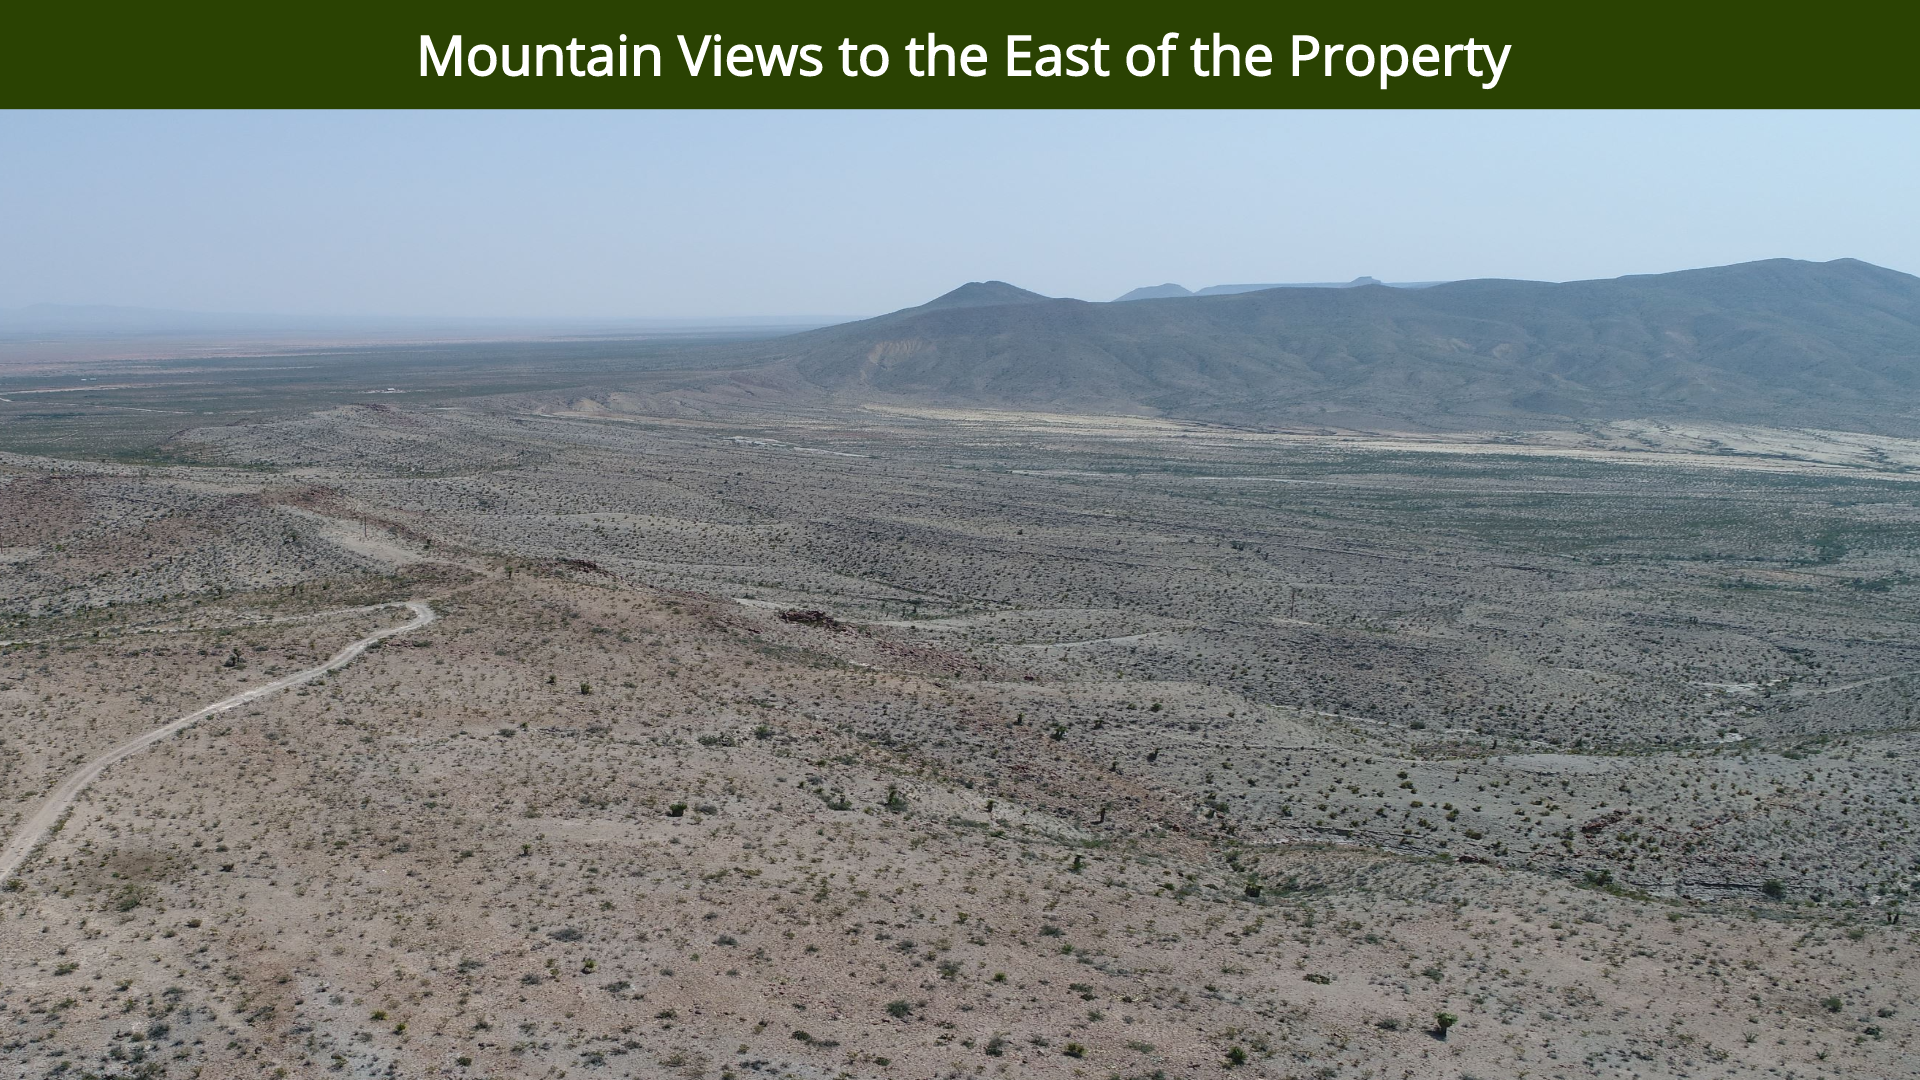 Mountain Views to the East of the Proper